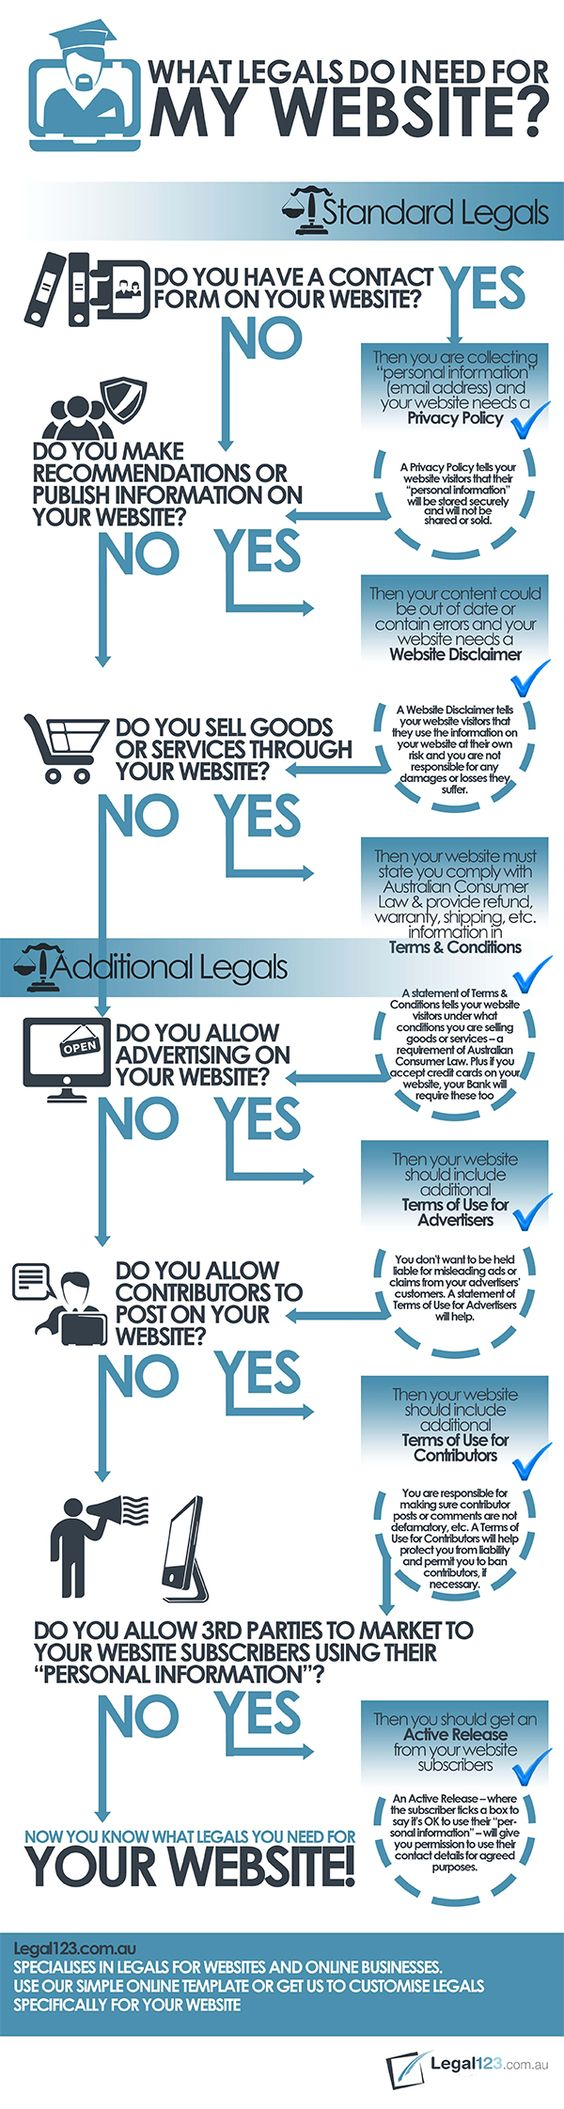 Own a Website? Here Are Some Legal Documents You Might Need [INFOGRAPHIC]